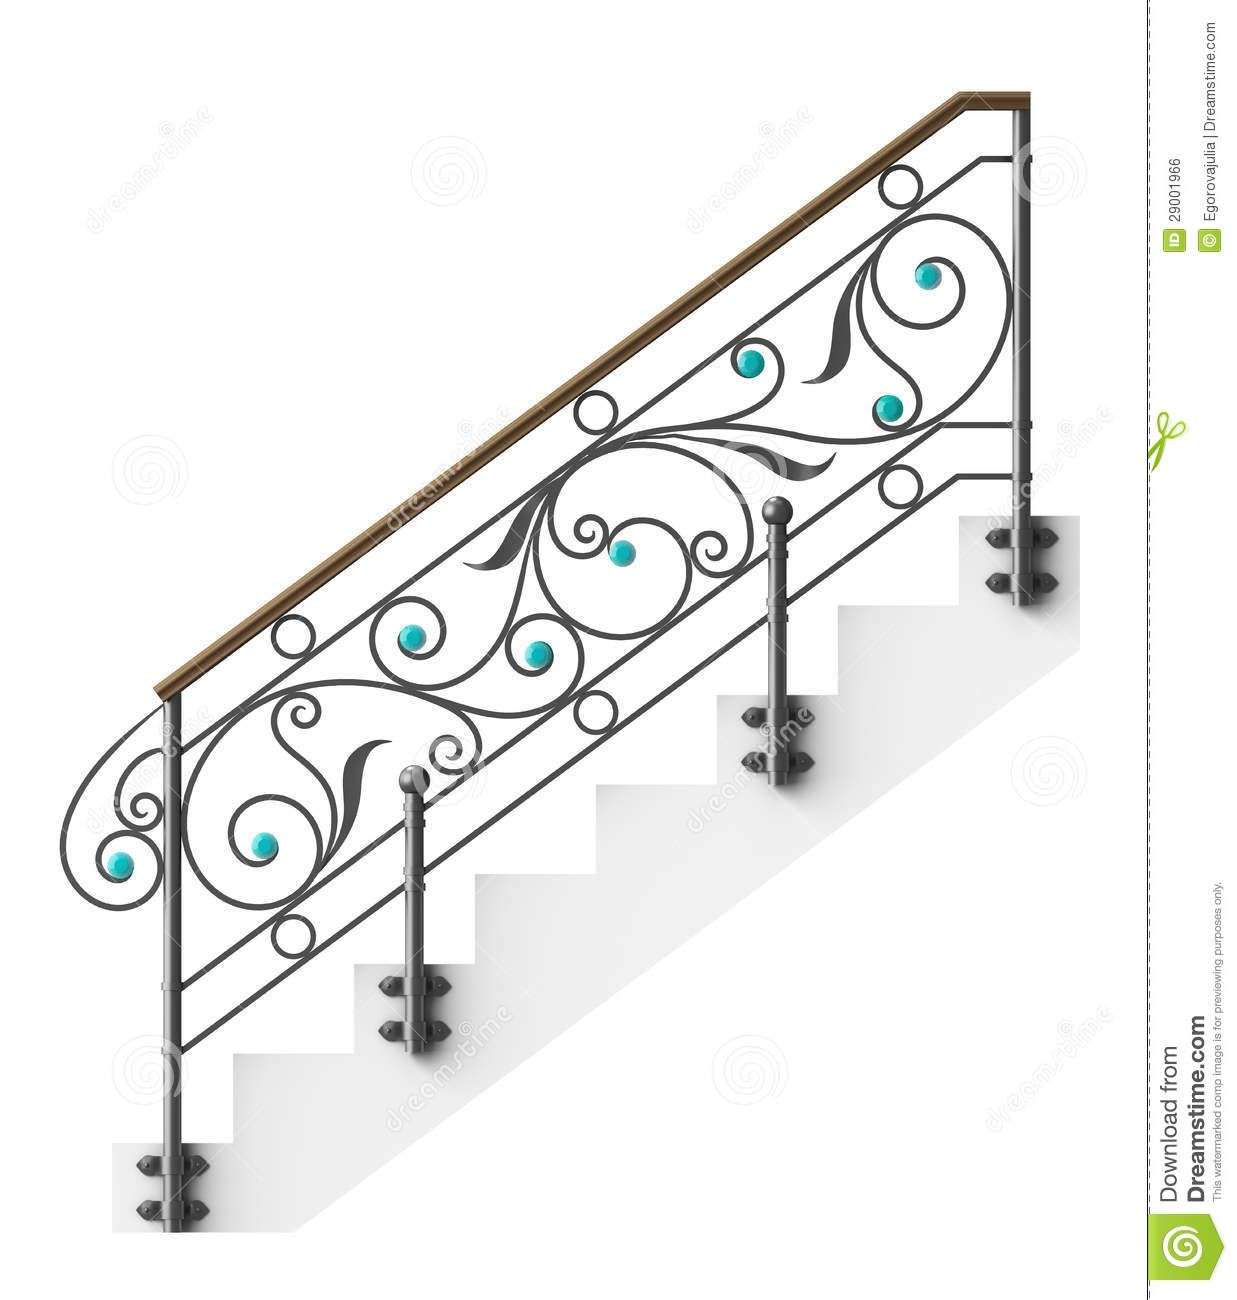 Wrought Iron Stairs Railing Download From Over 41 Million High